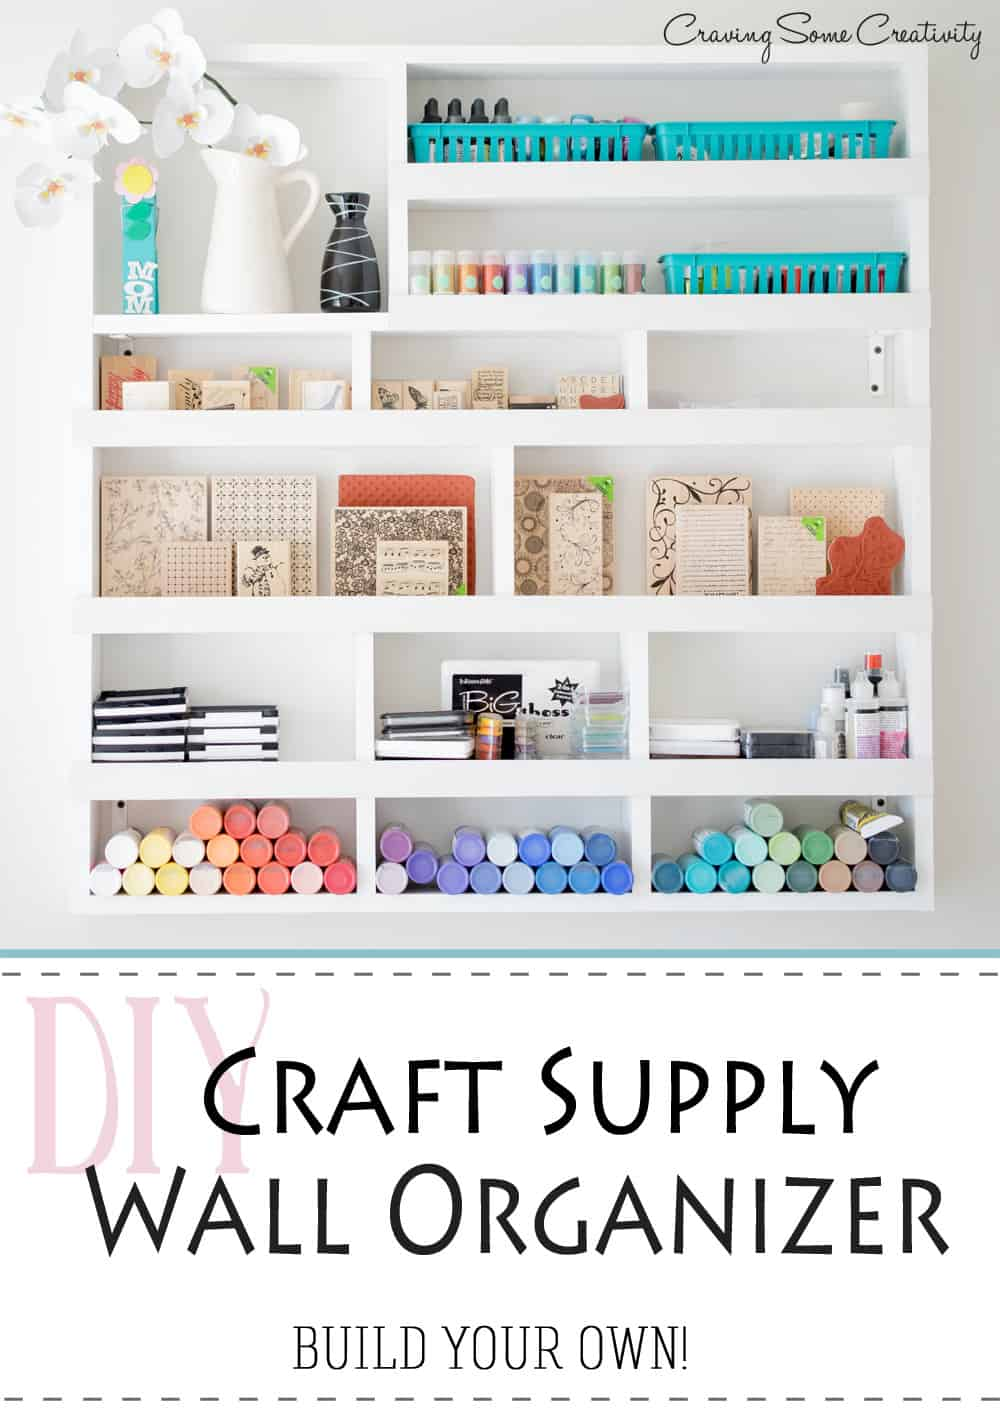 Tall all organizer for paints and stamps